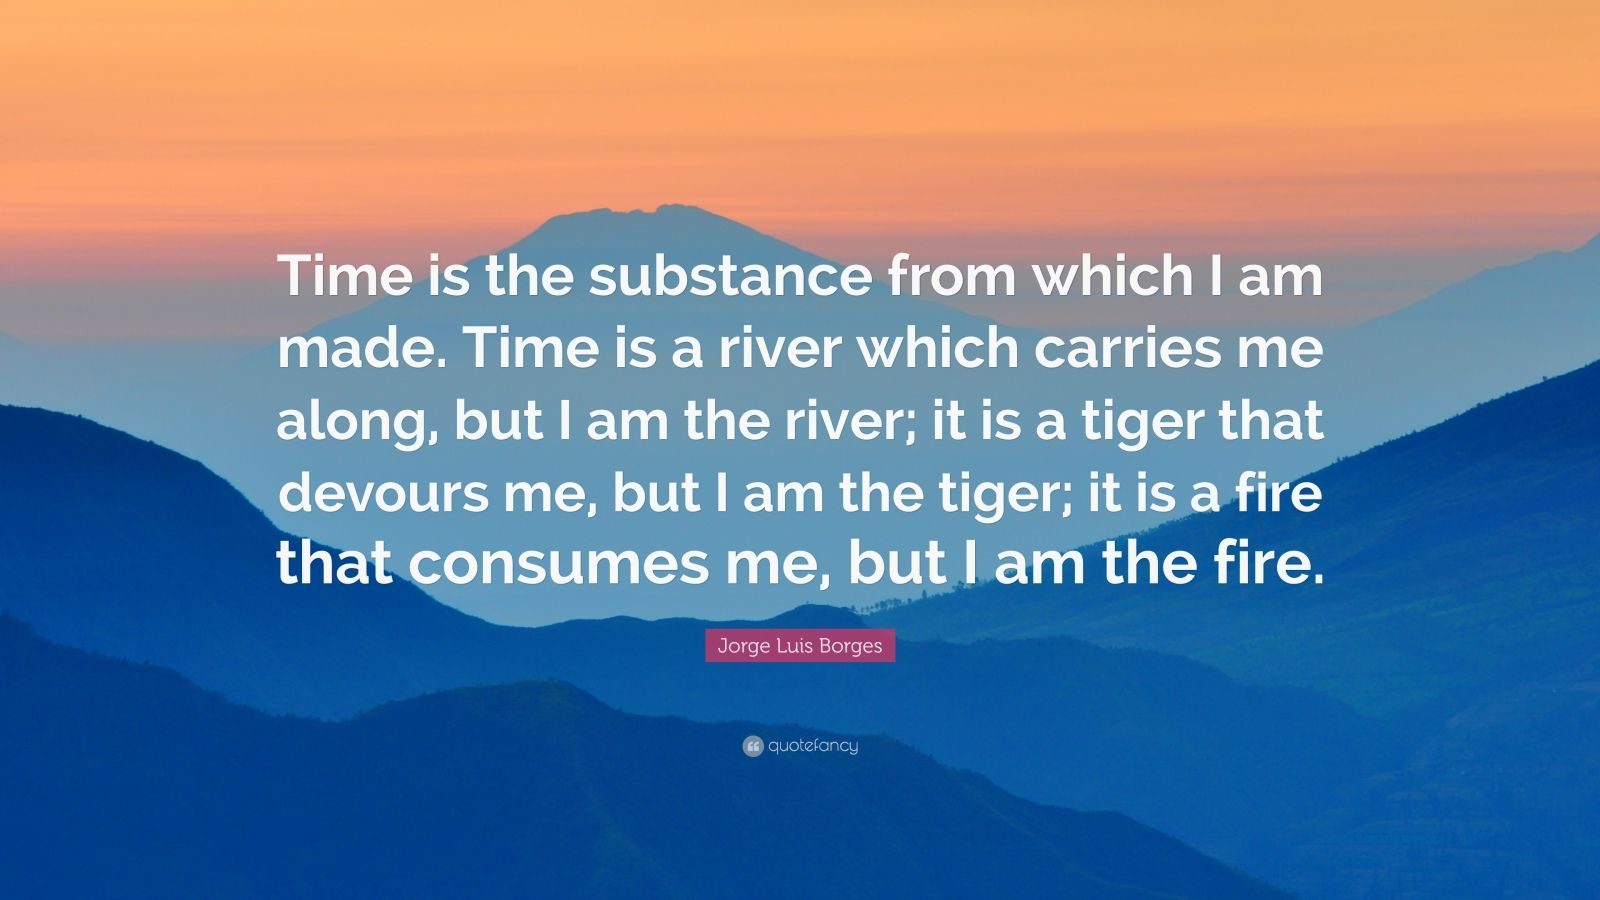 """Jorge Luis Borges Quote: """"Time is the substance from which I am made. Time is a river which carries me along, but I am the river; it is a tiger that devours me, but I am the tiger; it is a fire that consumes me, but I am the fire."""""""